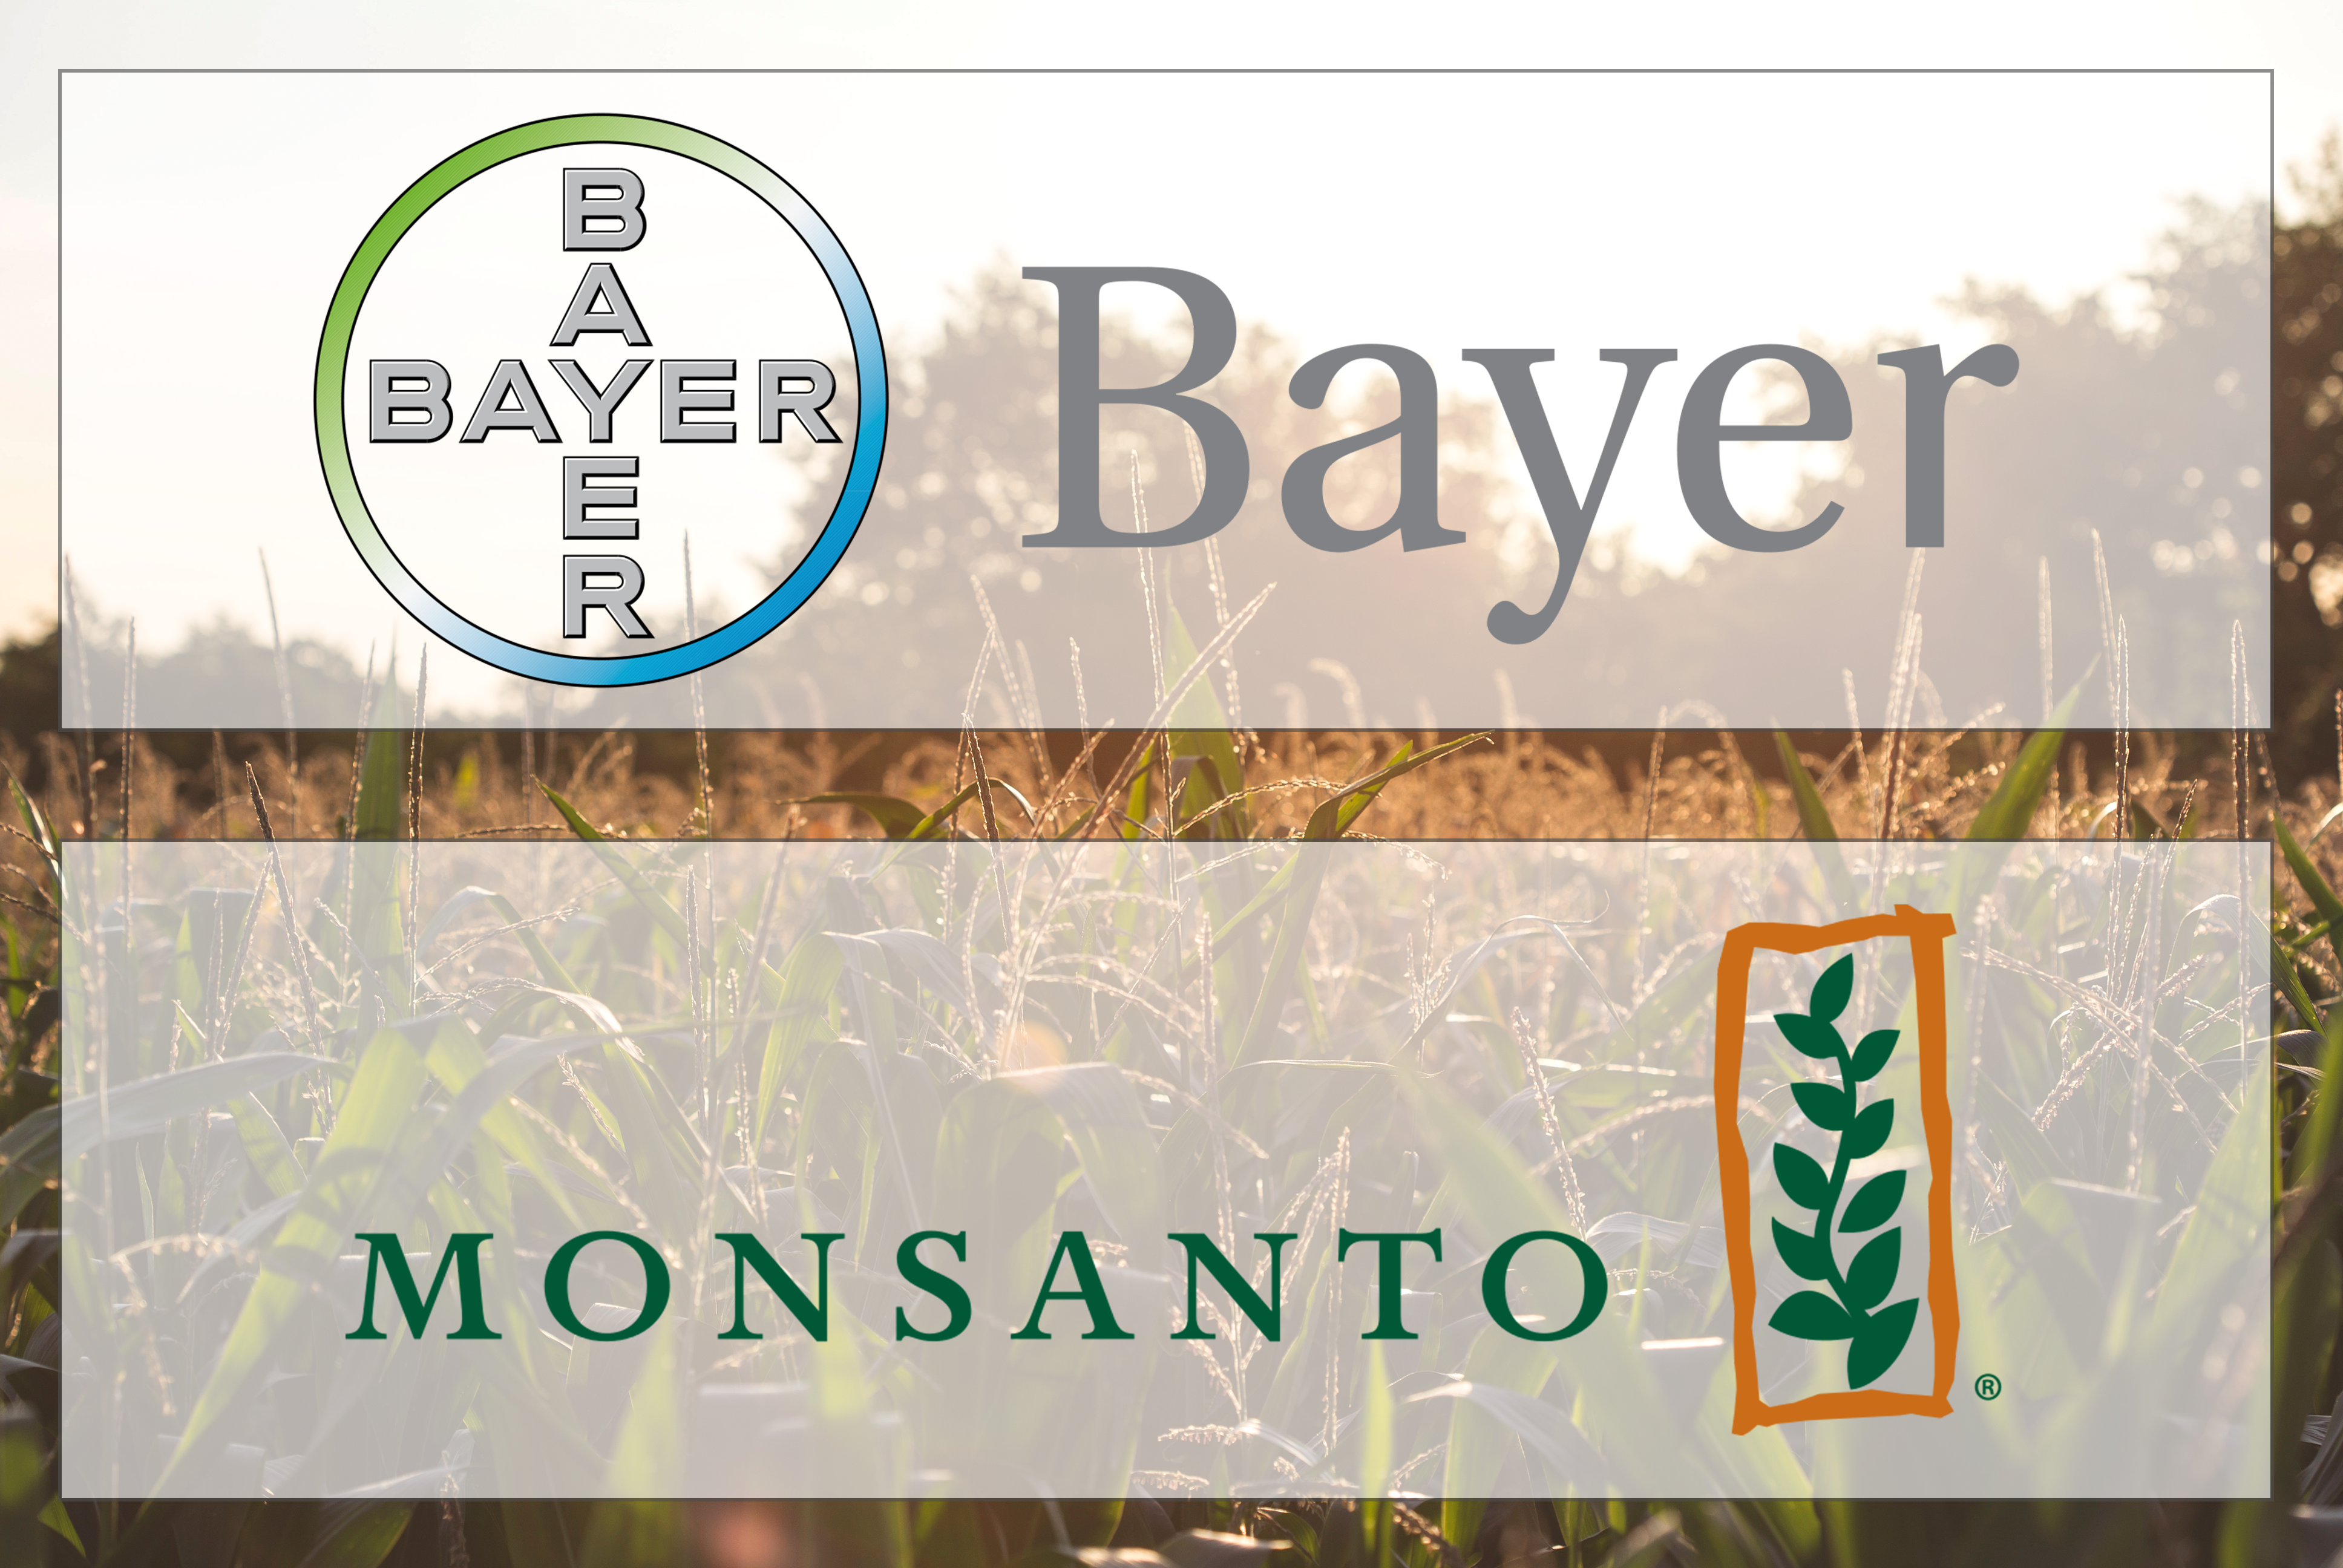 NFU Condemns Bayer/Monsanto Deal, Asks for Critical Review of Consolidation in Ag